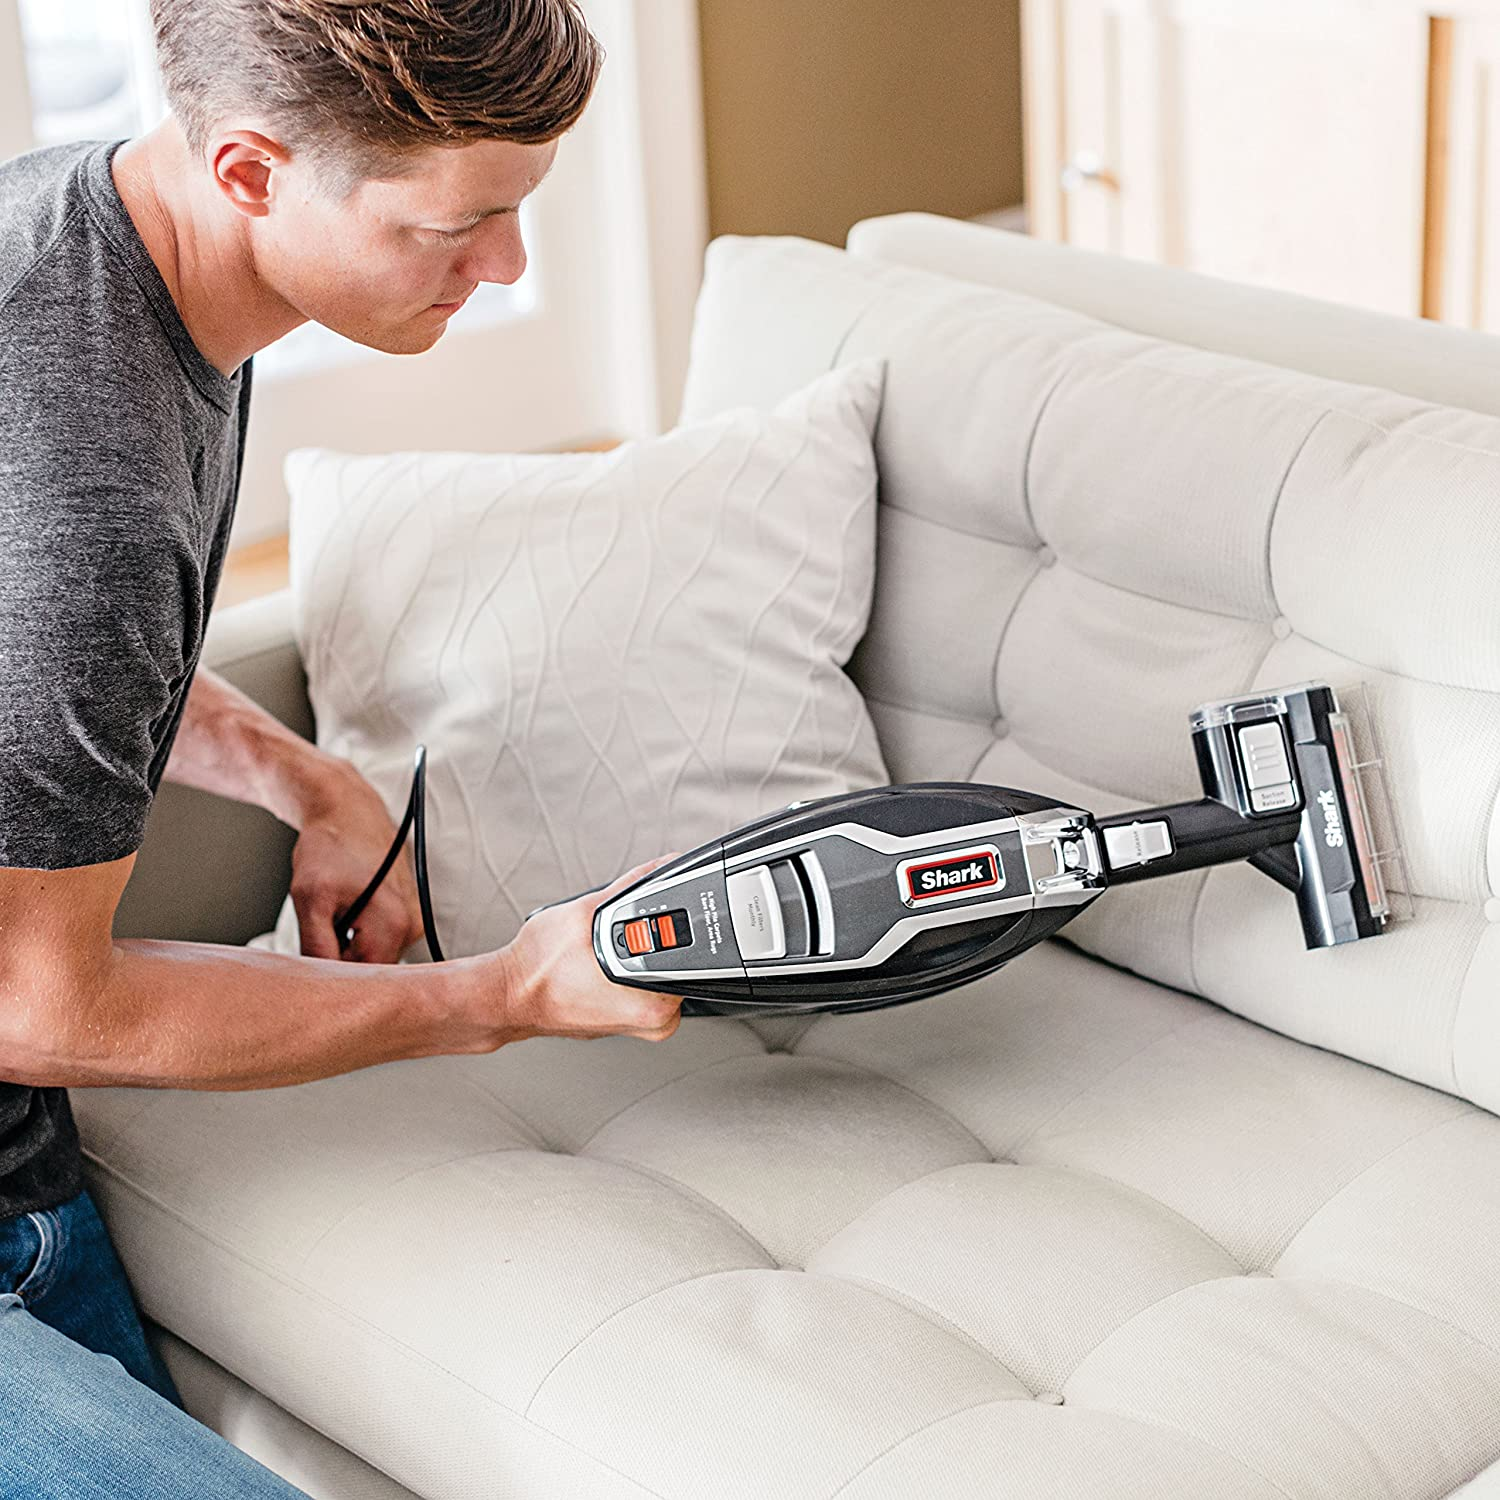 Best Shark Vacuums Tested & Reviewed 38